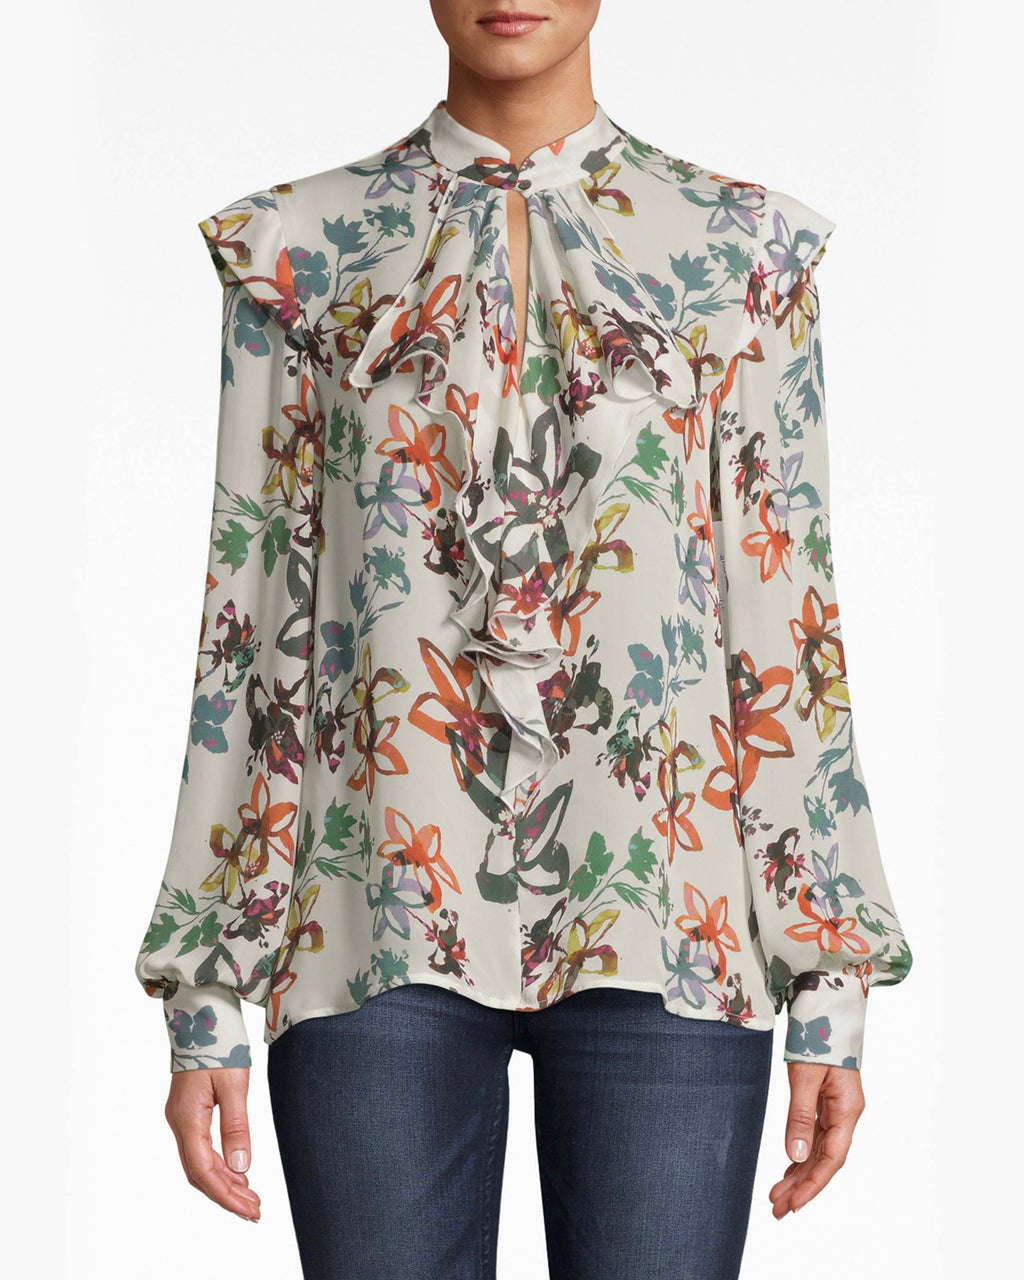 BE10387 - AUTUMN DREAM SILK RUFFLE BLOUSE - tops - blouses - Cascading ruffles on this silk blouse are the centerpiece for the eyes. The loose sleeves balloon at the cuffs. A keyhole opening embedded in the neckline balances the structured collar. Pair back with simple denim.